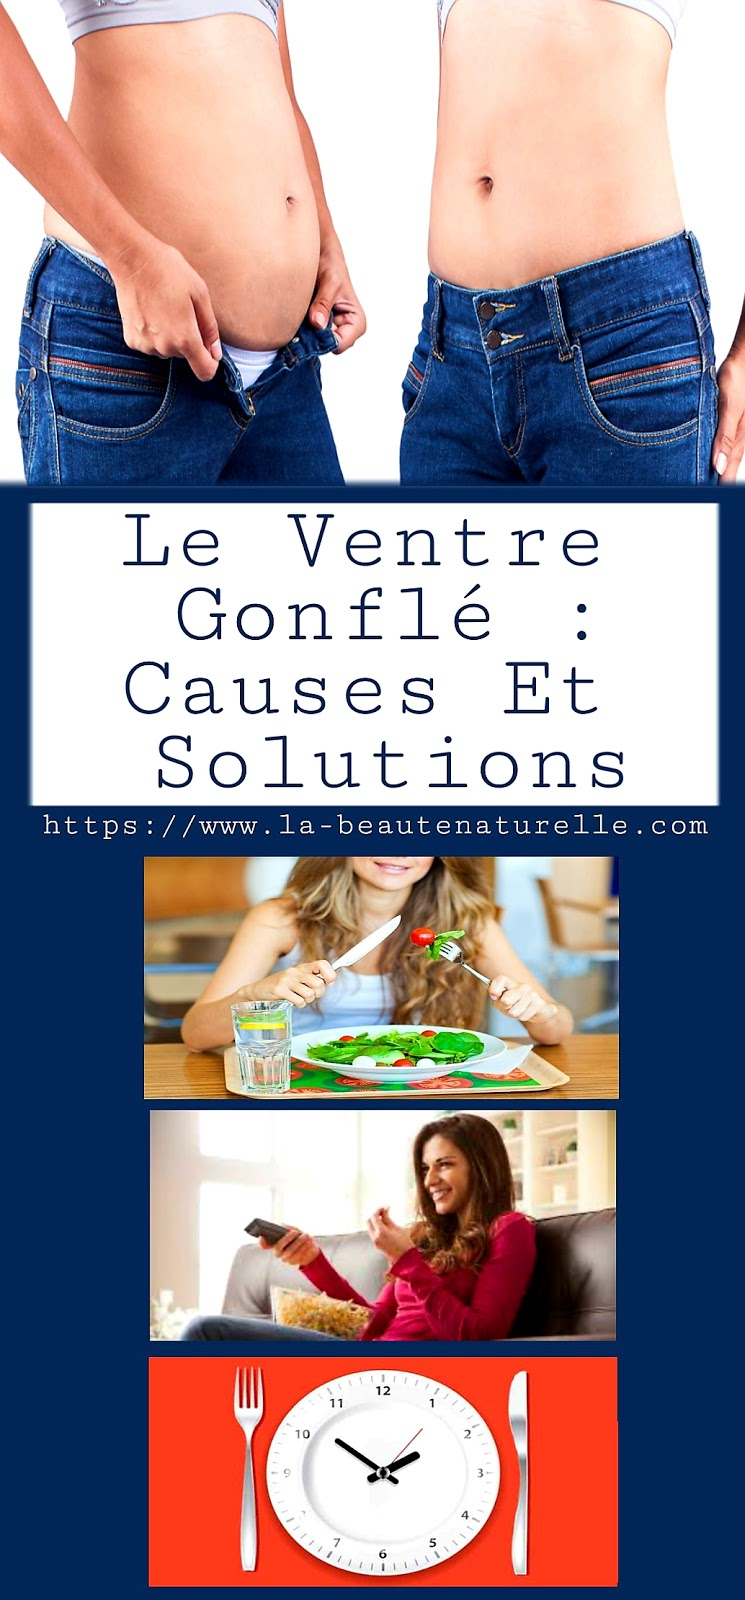 Le ventre gonflé : Causes et solutions